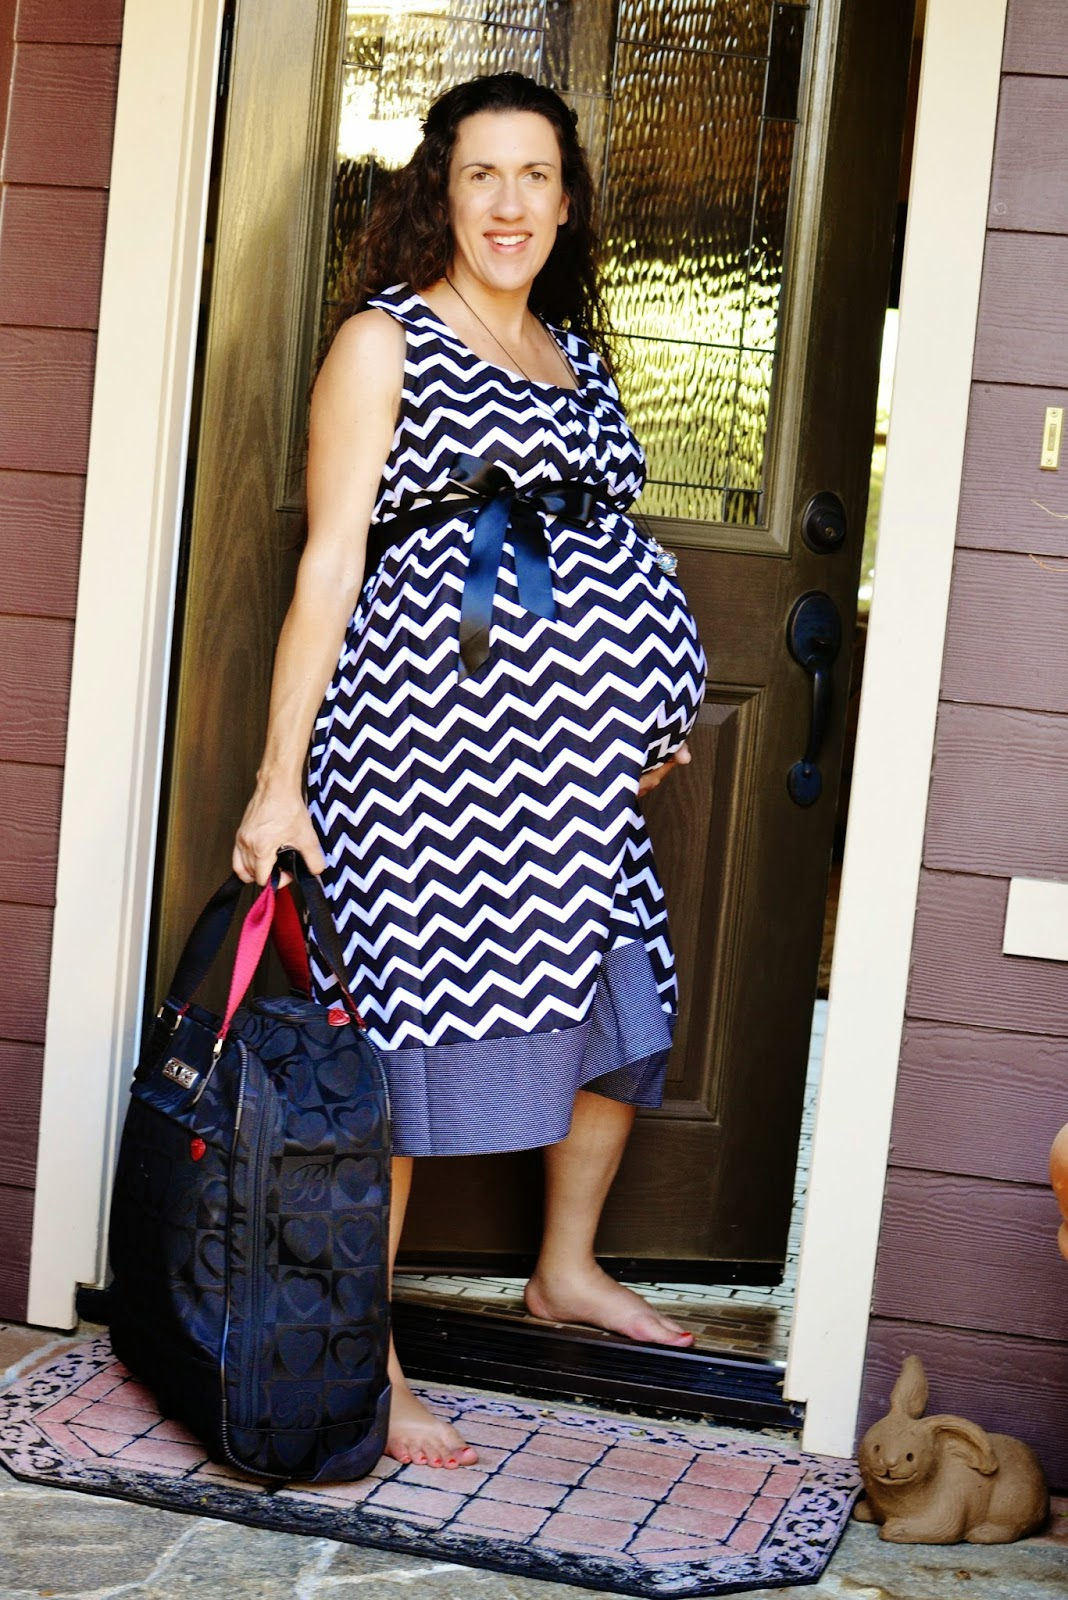 Birth Day Suits Maternity Hospital Gown